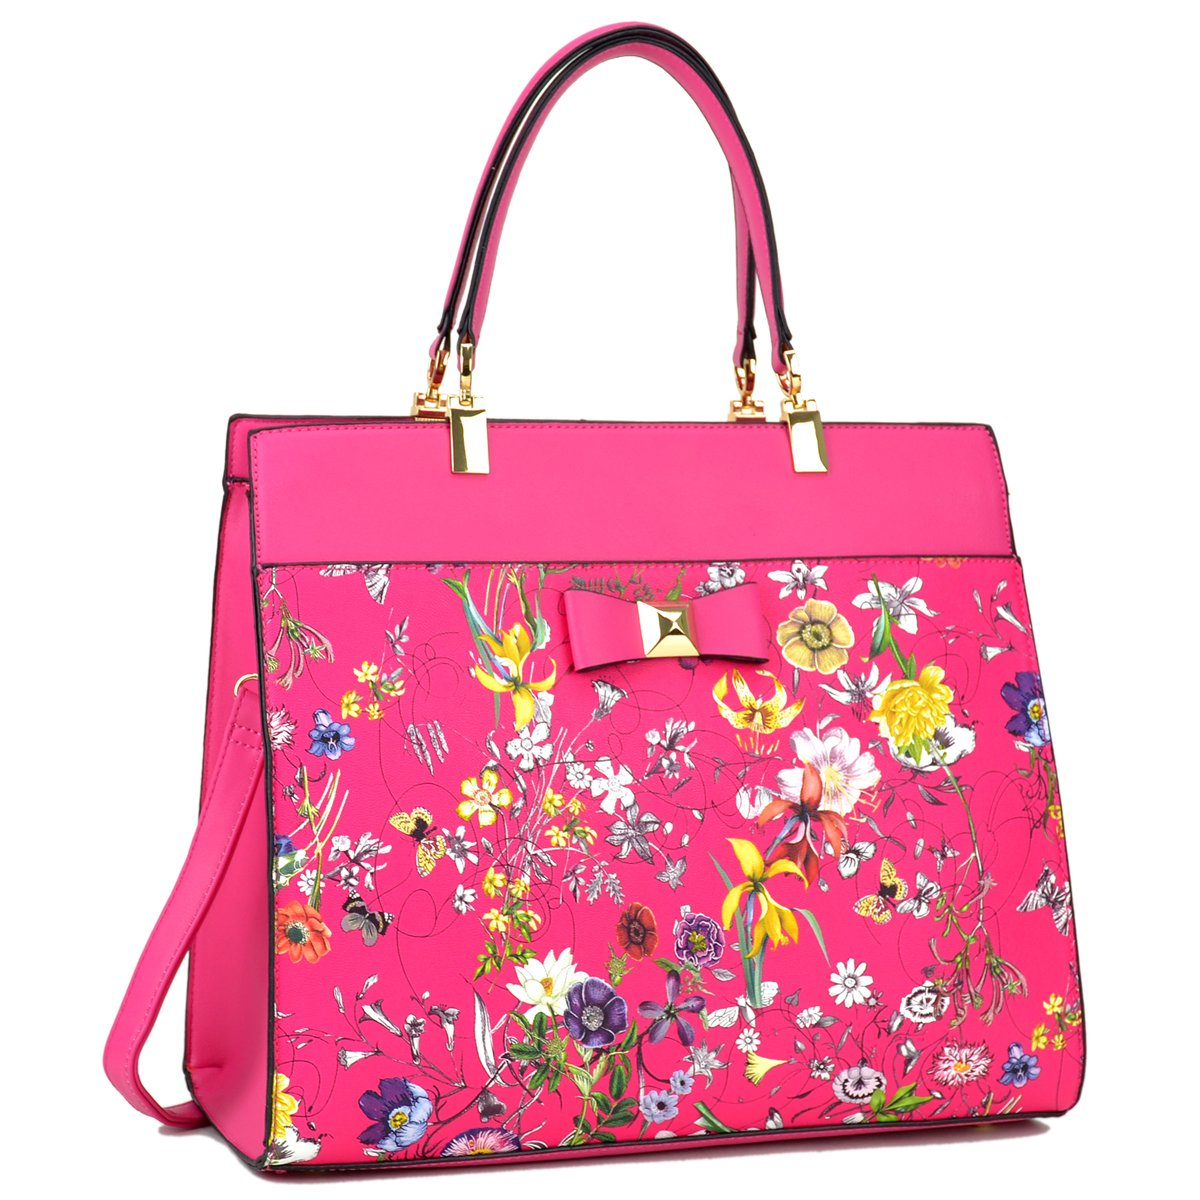 Dasein Women's Fashion Designer Satchel Handbags Purse Shoulder Bag Work Bag With Removable Shoulder Strap (F-6338 Fuchsia Floral)